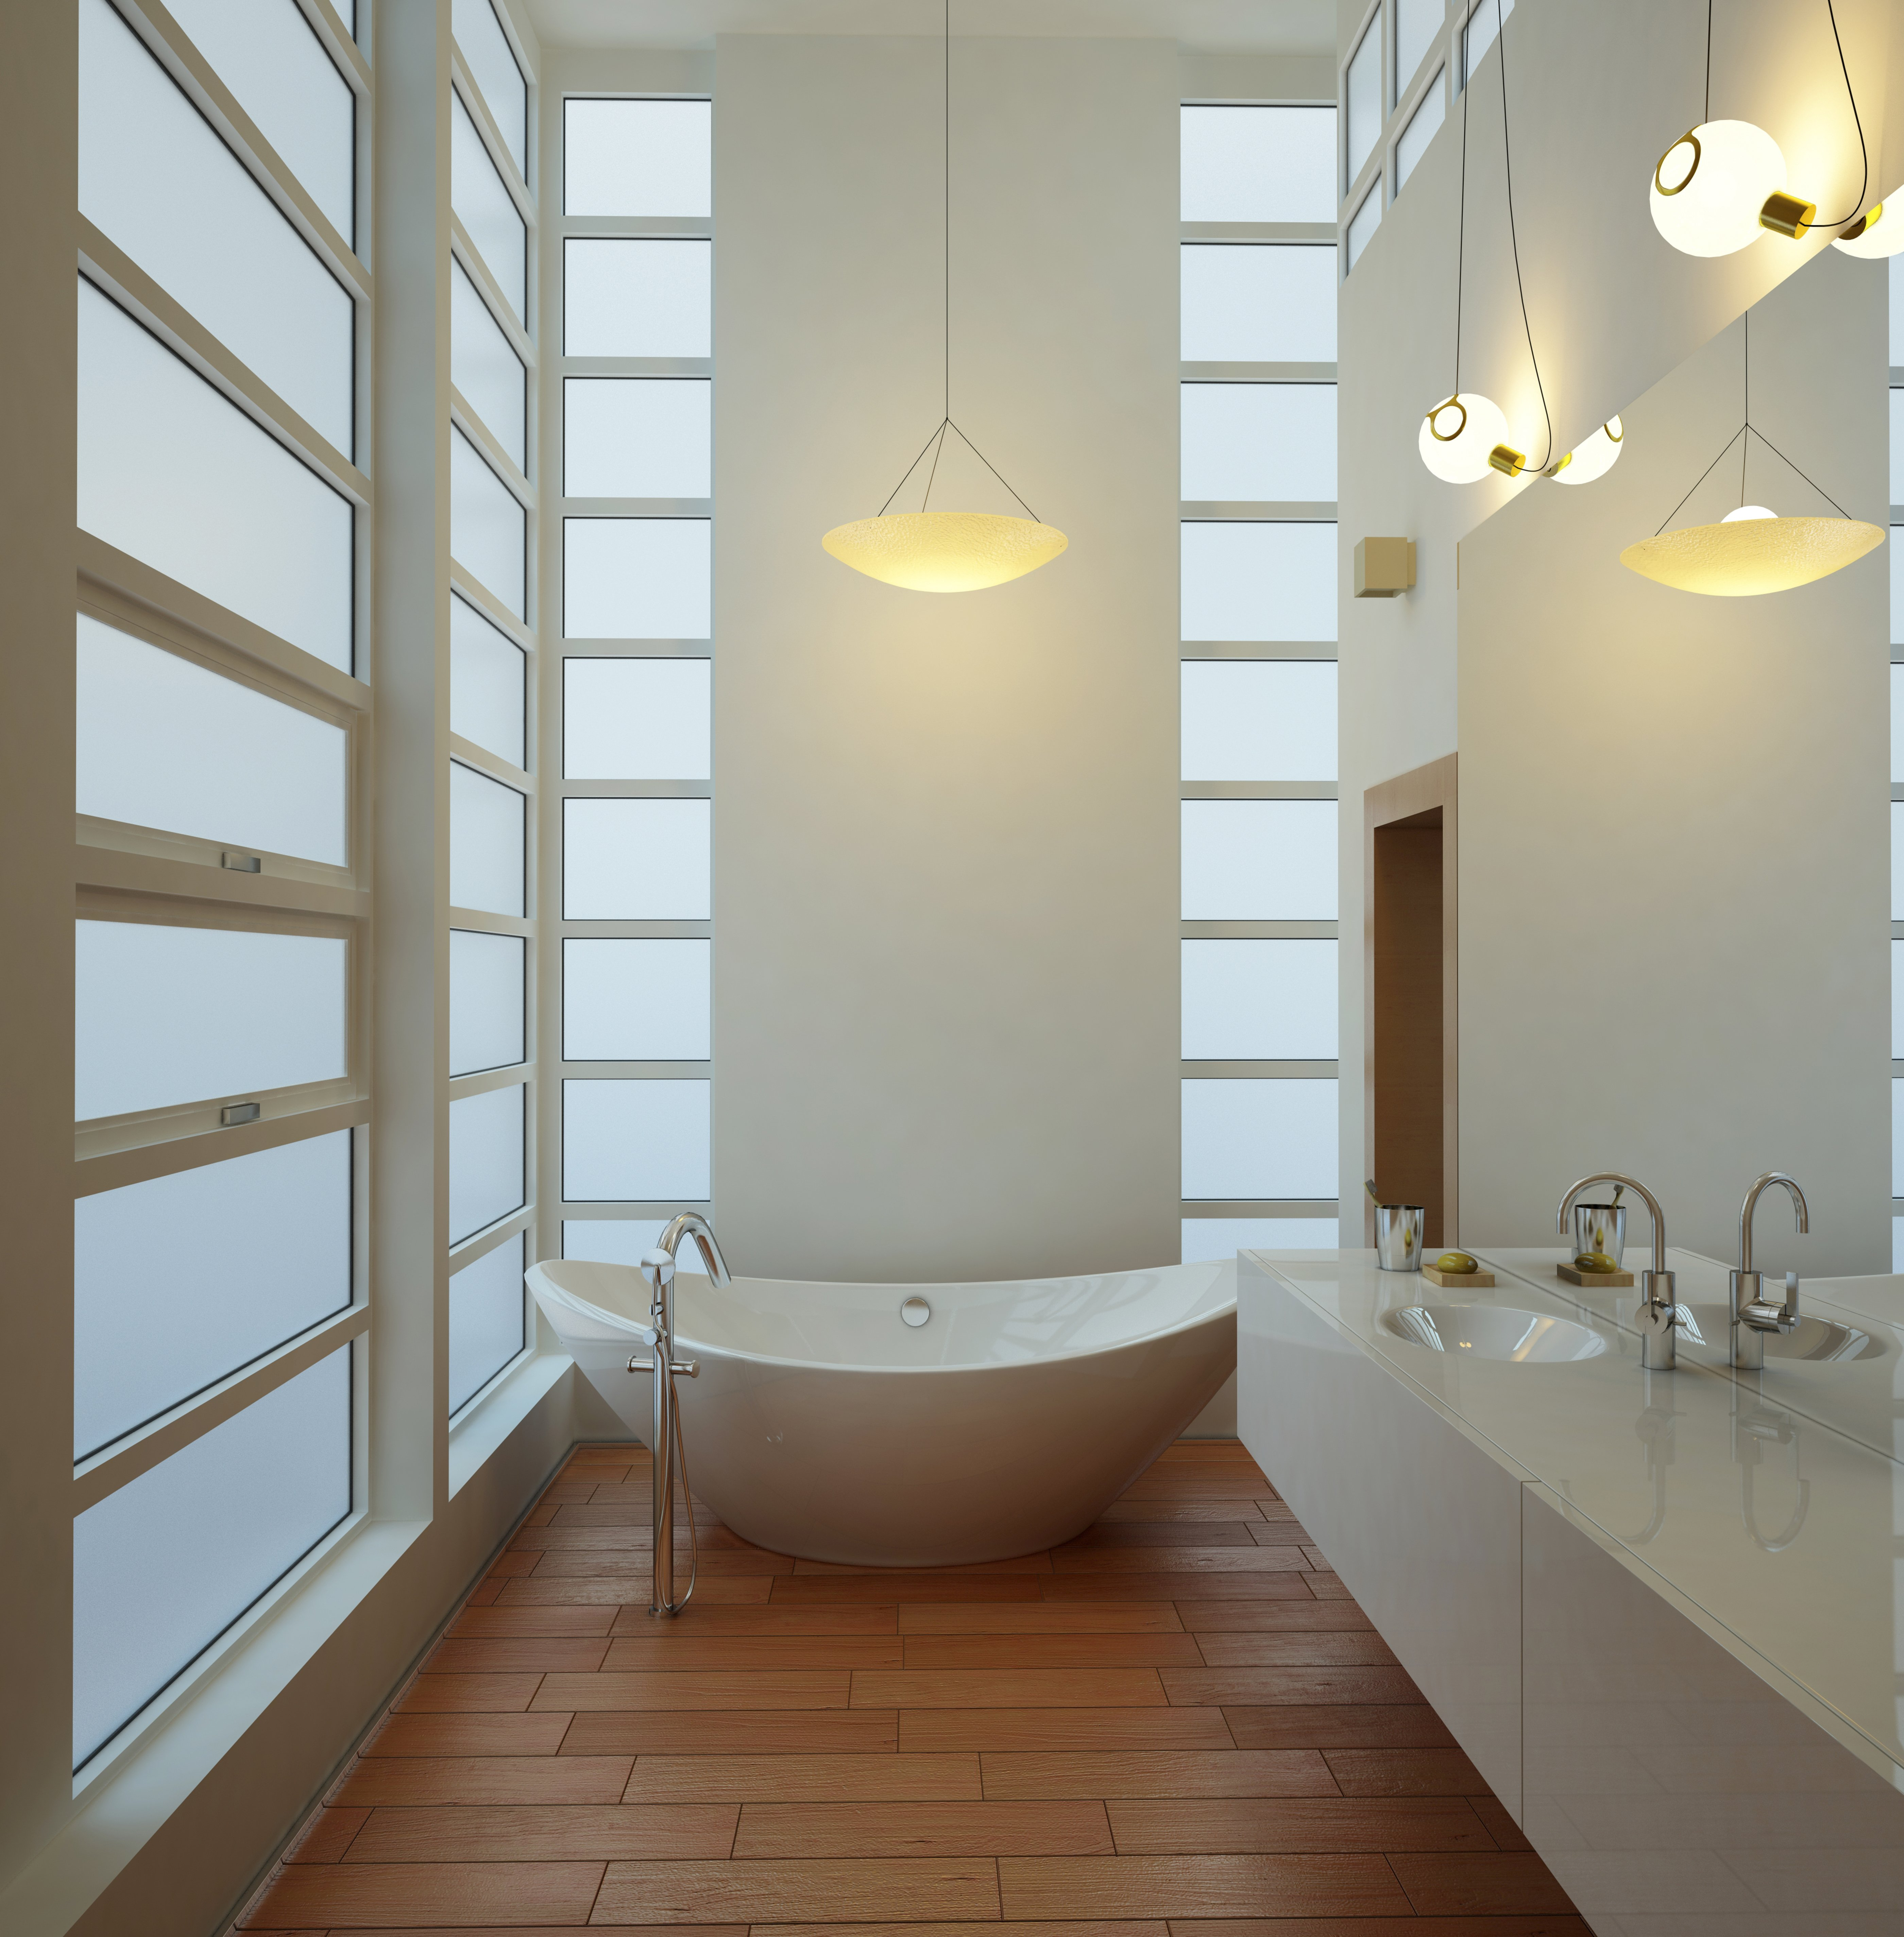 Heated Bathroom Tile: Radiant Heating Systems By WarmlyYours